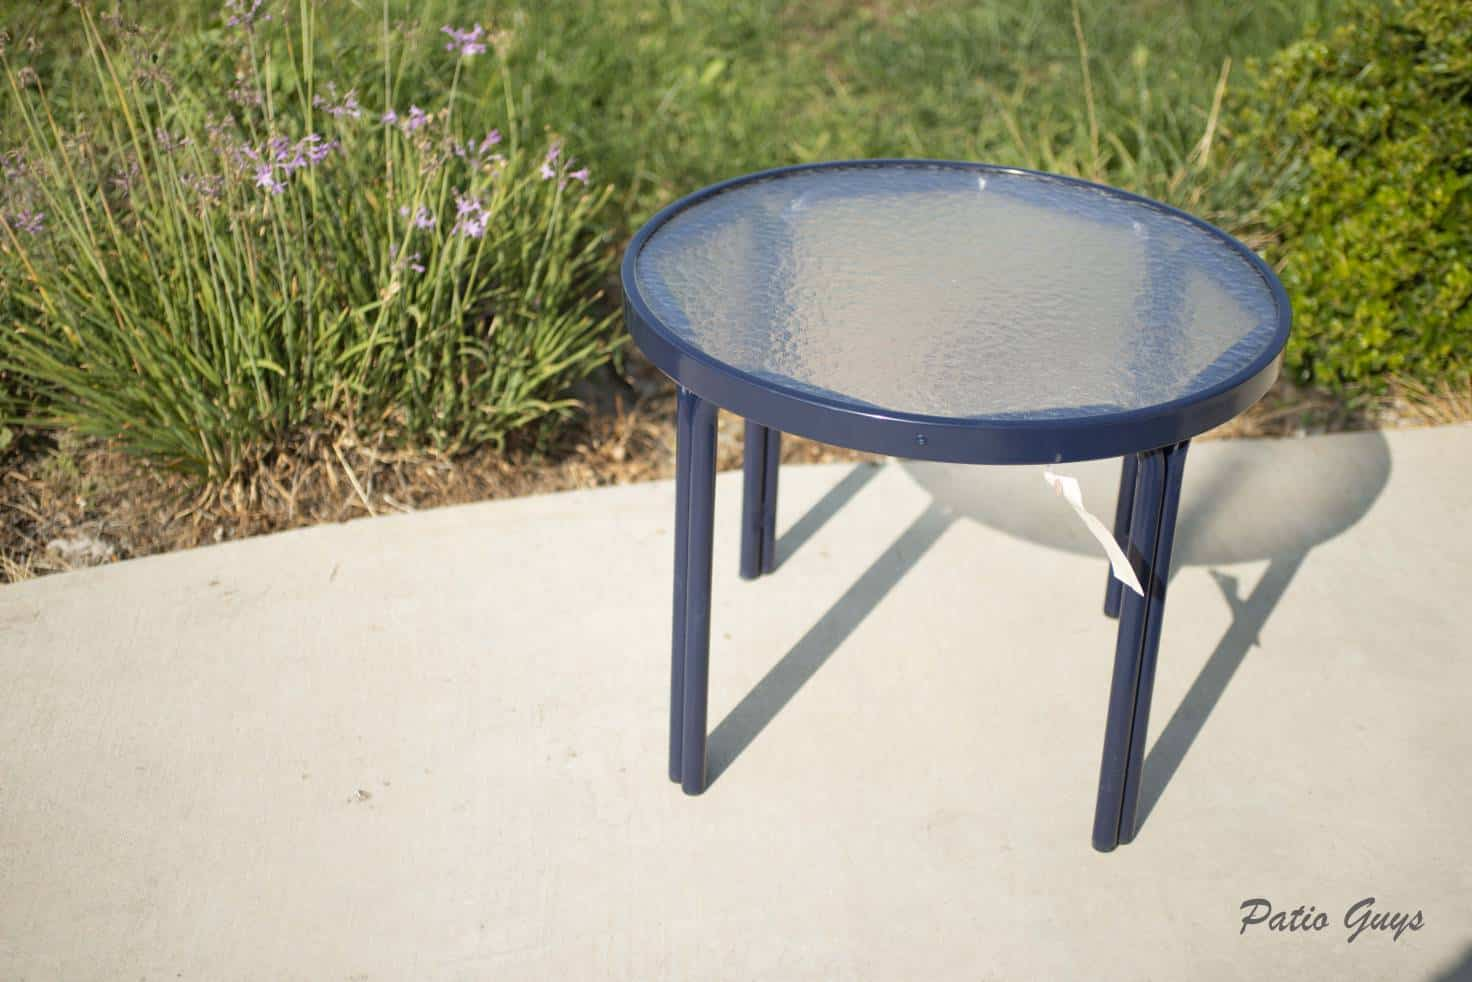 small round navy outdoor side table in front of grass and flowers